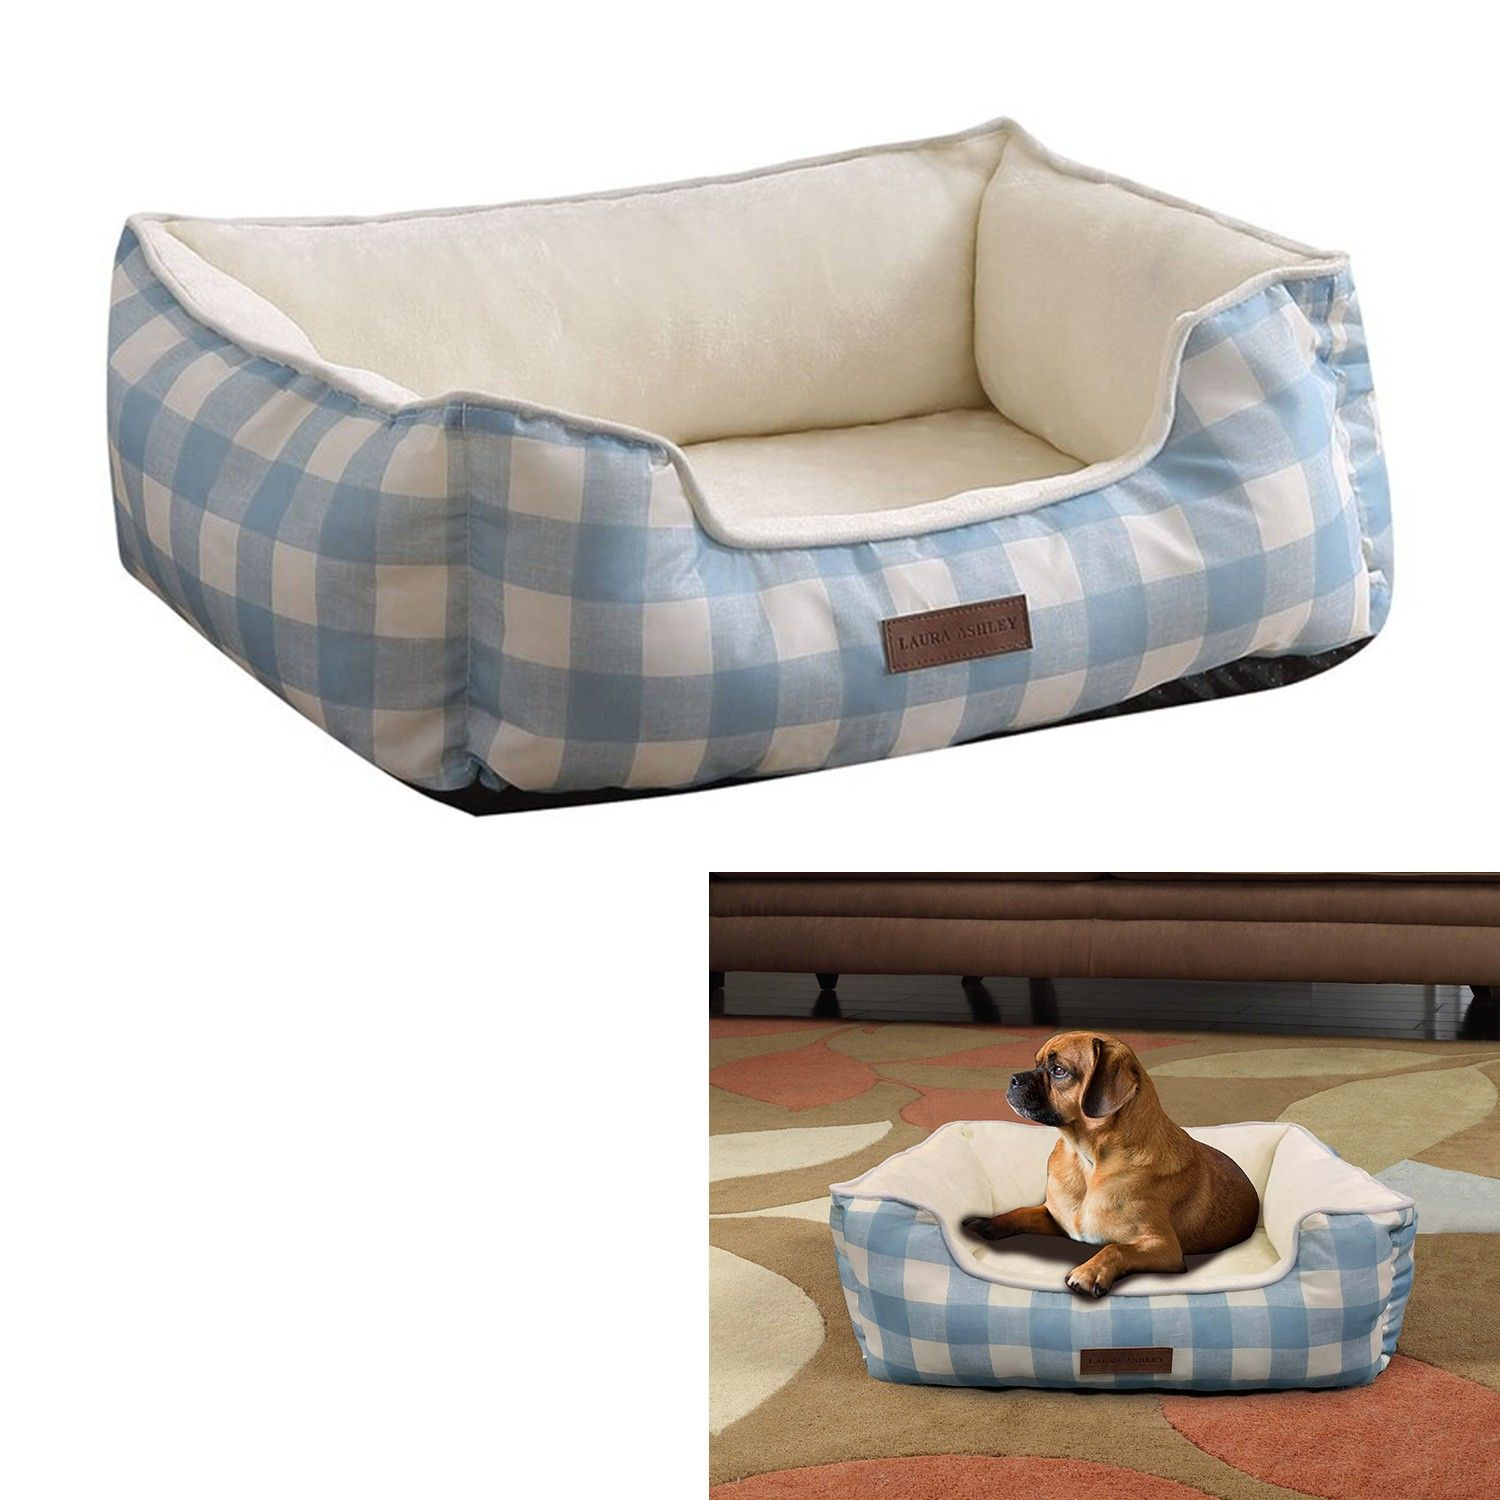 Pin On Pet Beds And Supplies